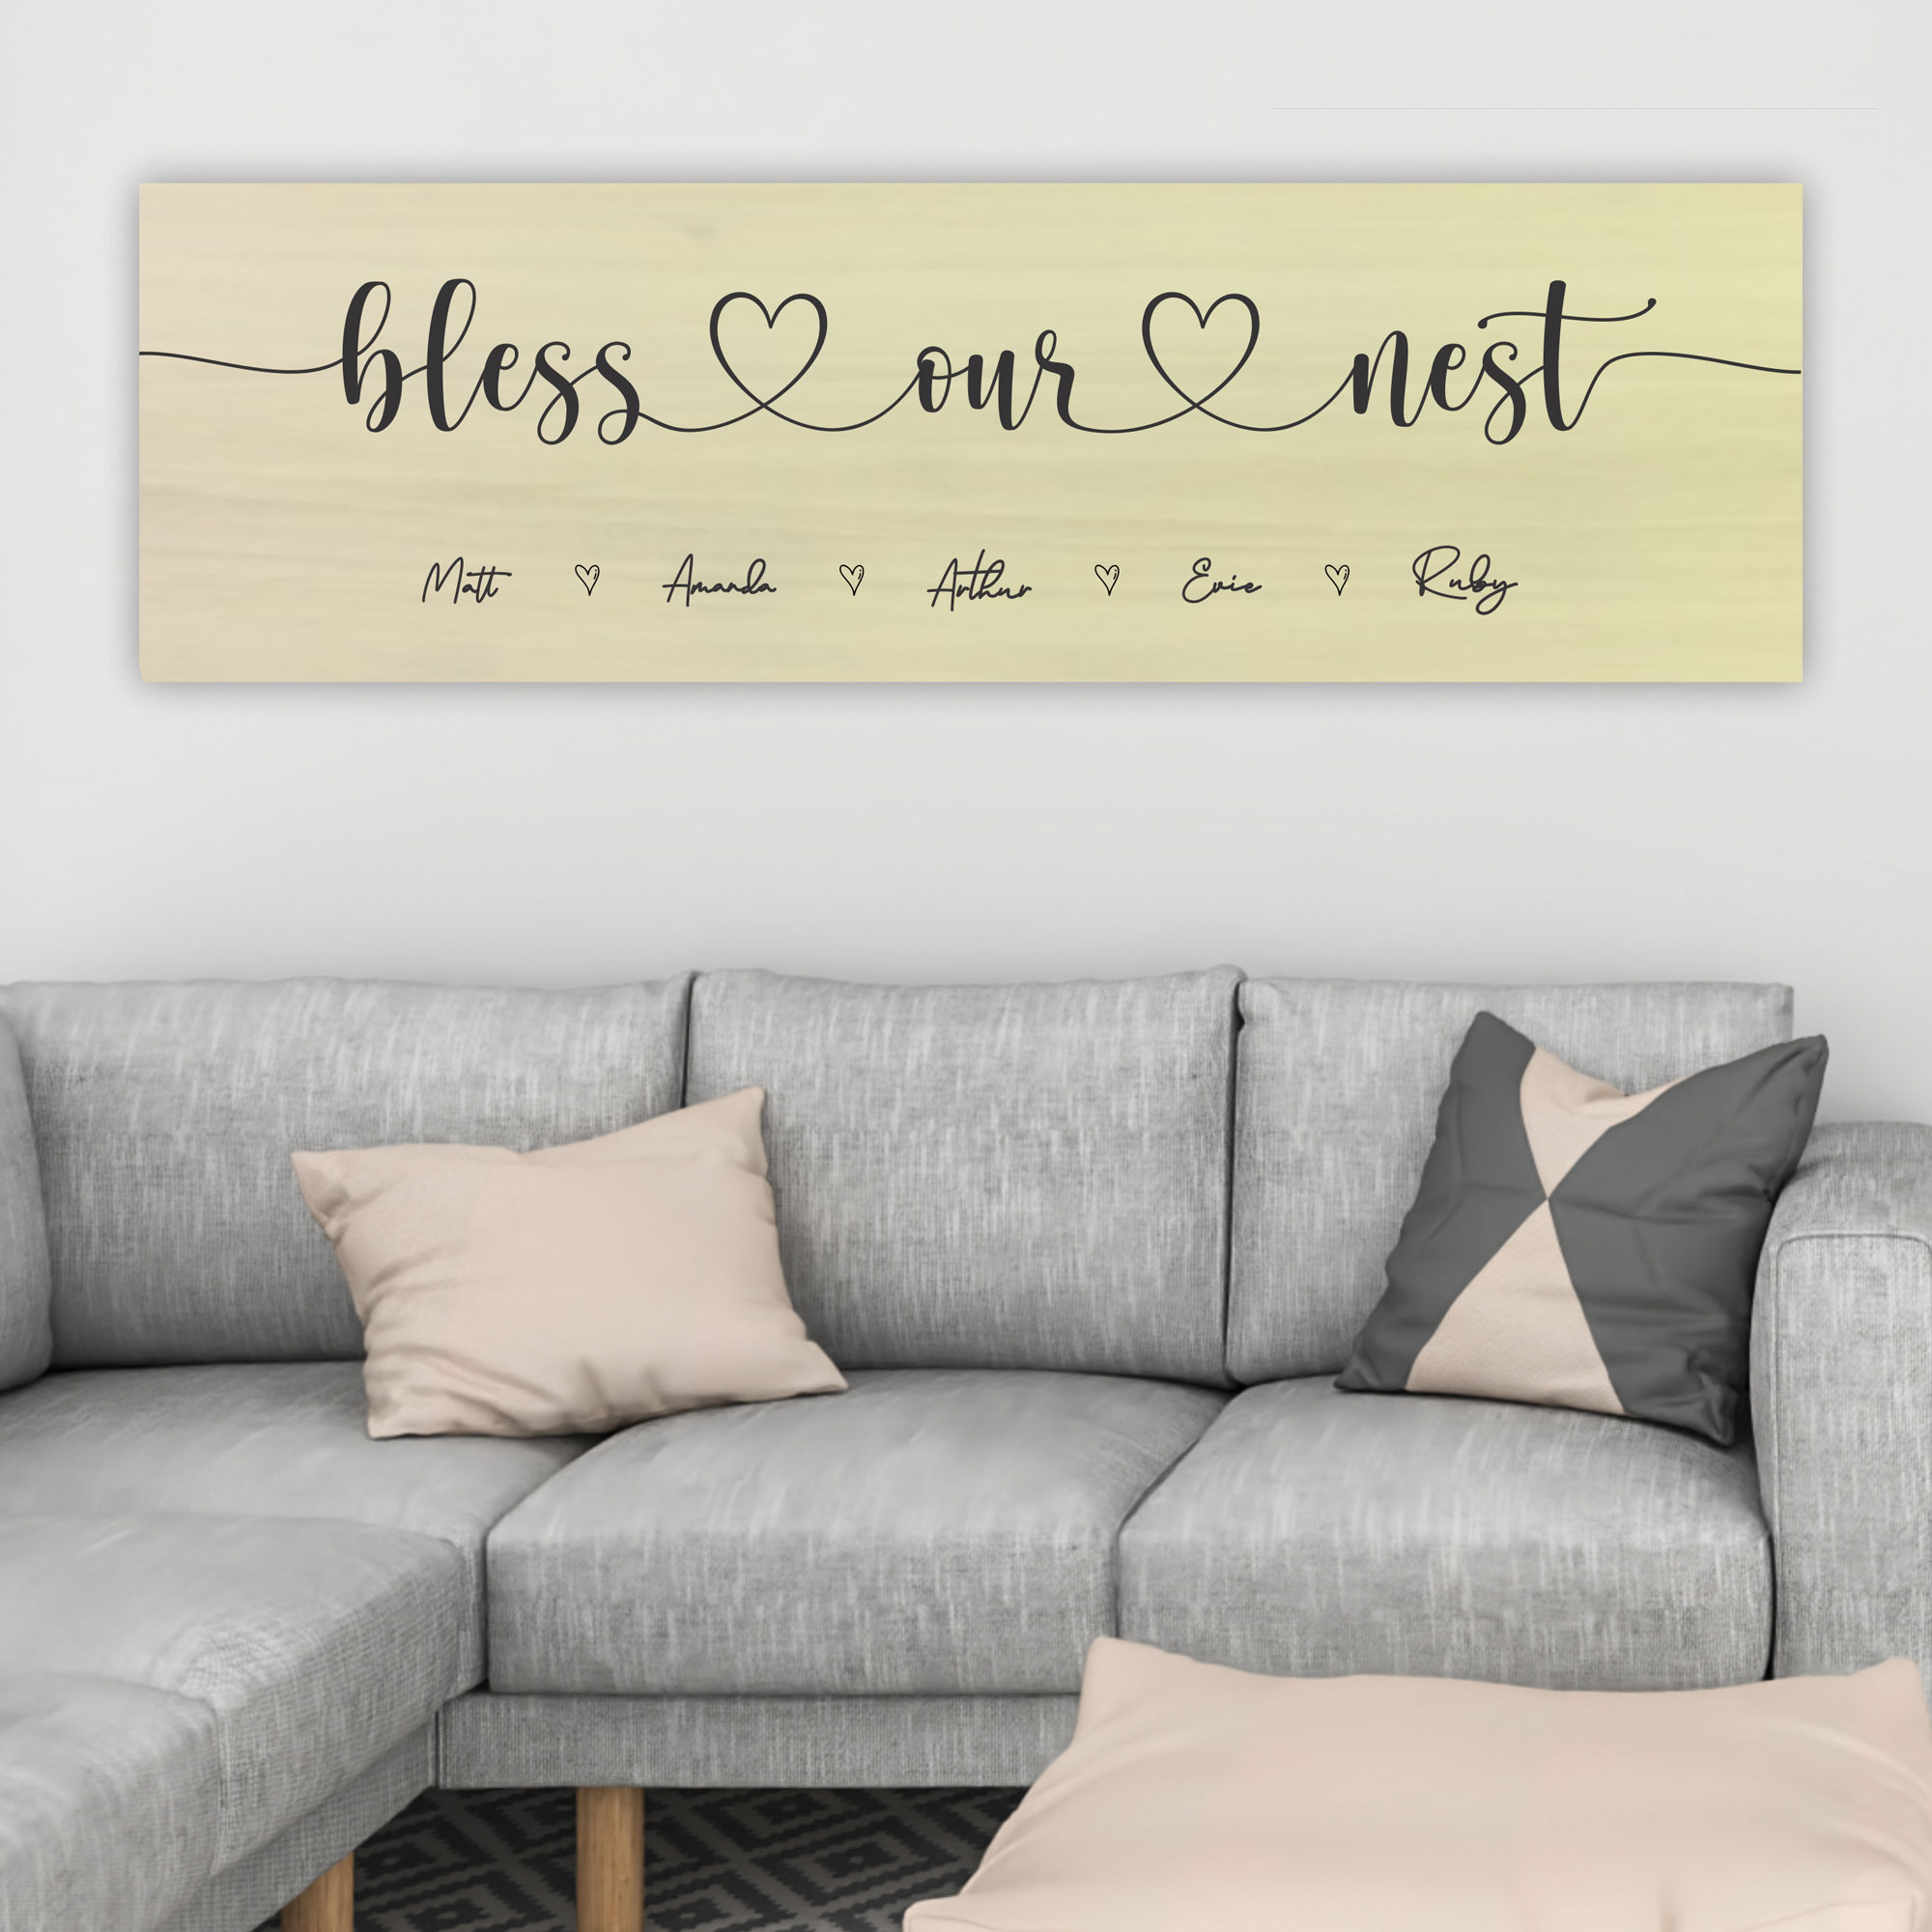 BLESS-OUR-NEST-WOOD-SIGN